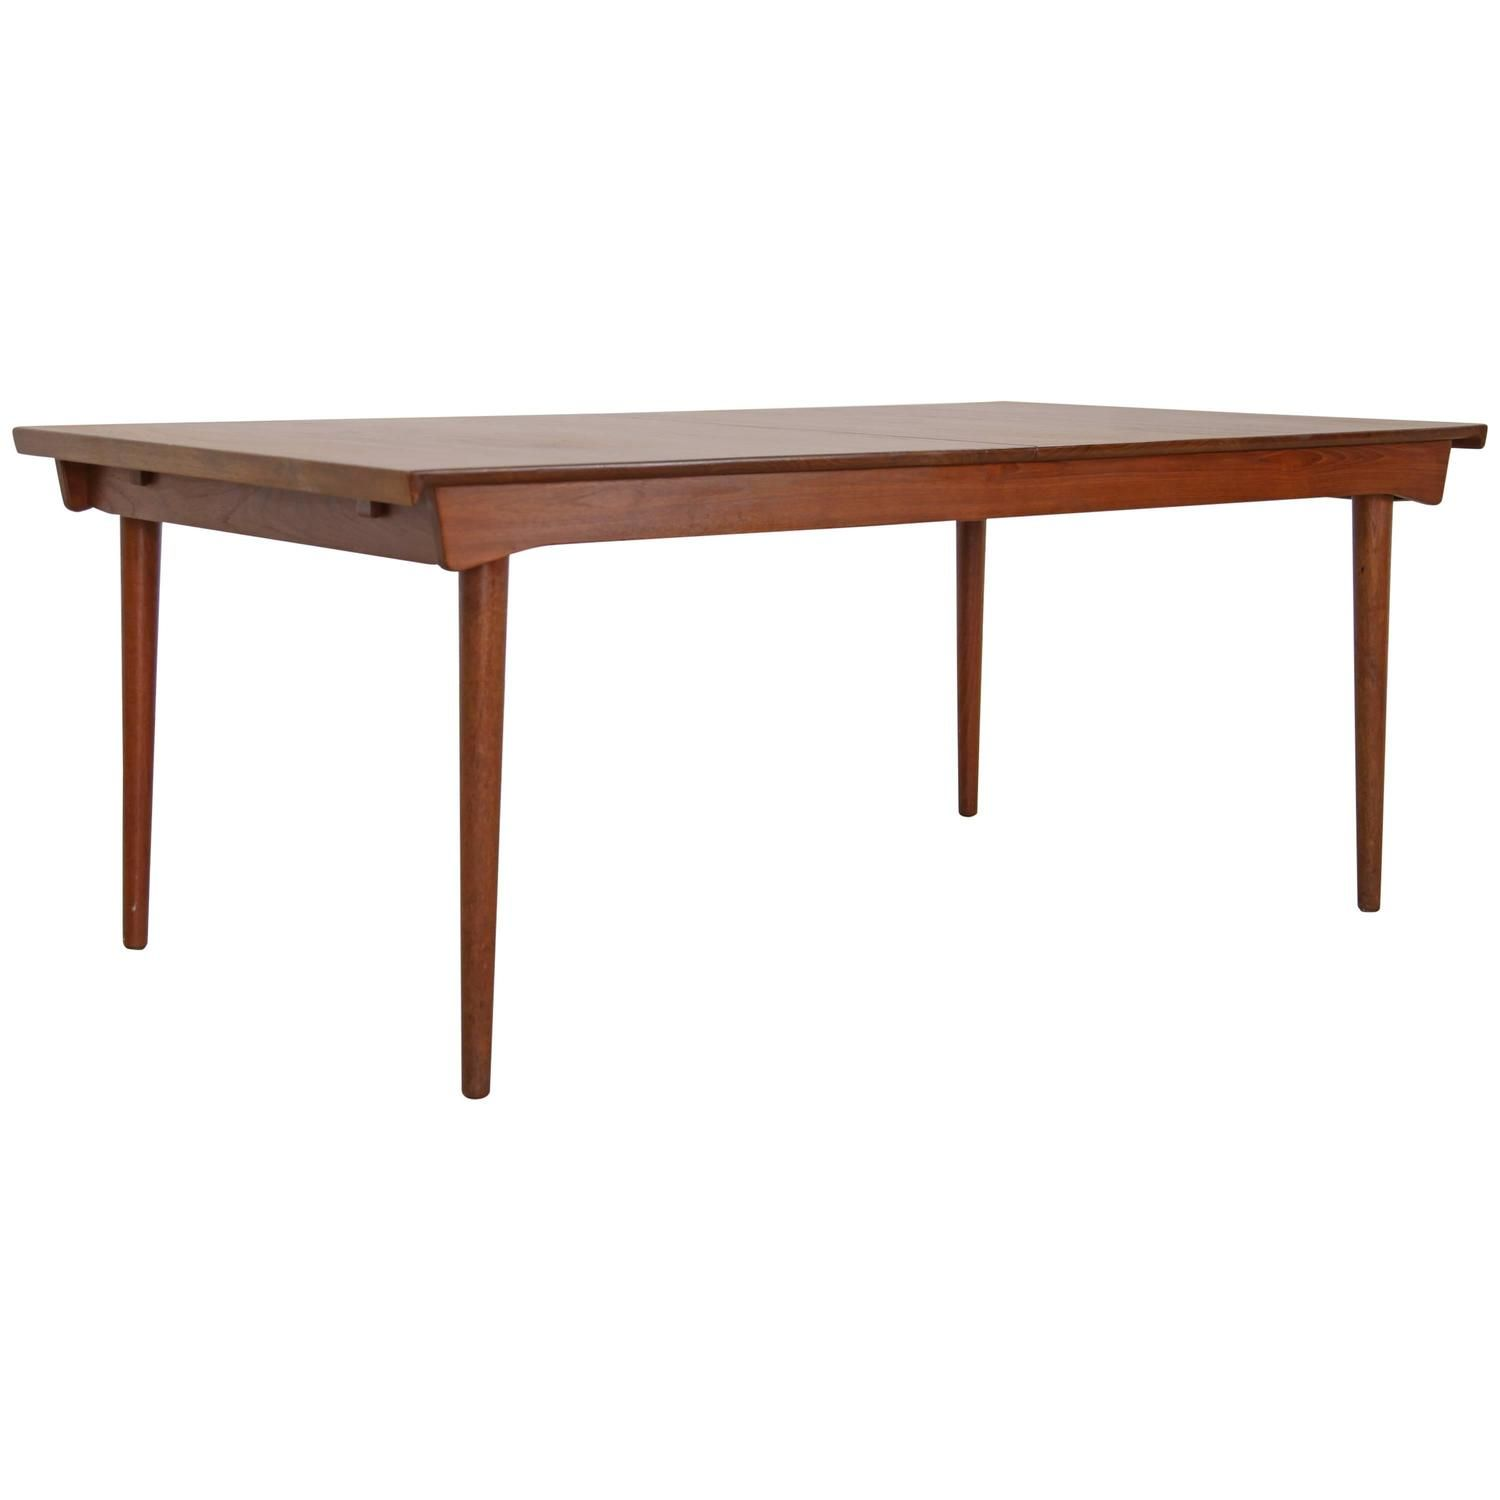 Finn Juhl Solid Teak Dining Table Fd 540 By France Daverkosen Dining Room Table Teak Dining Table Vintage Dining Room Table